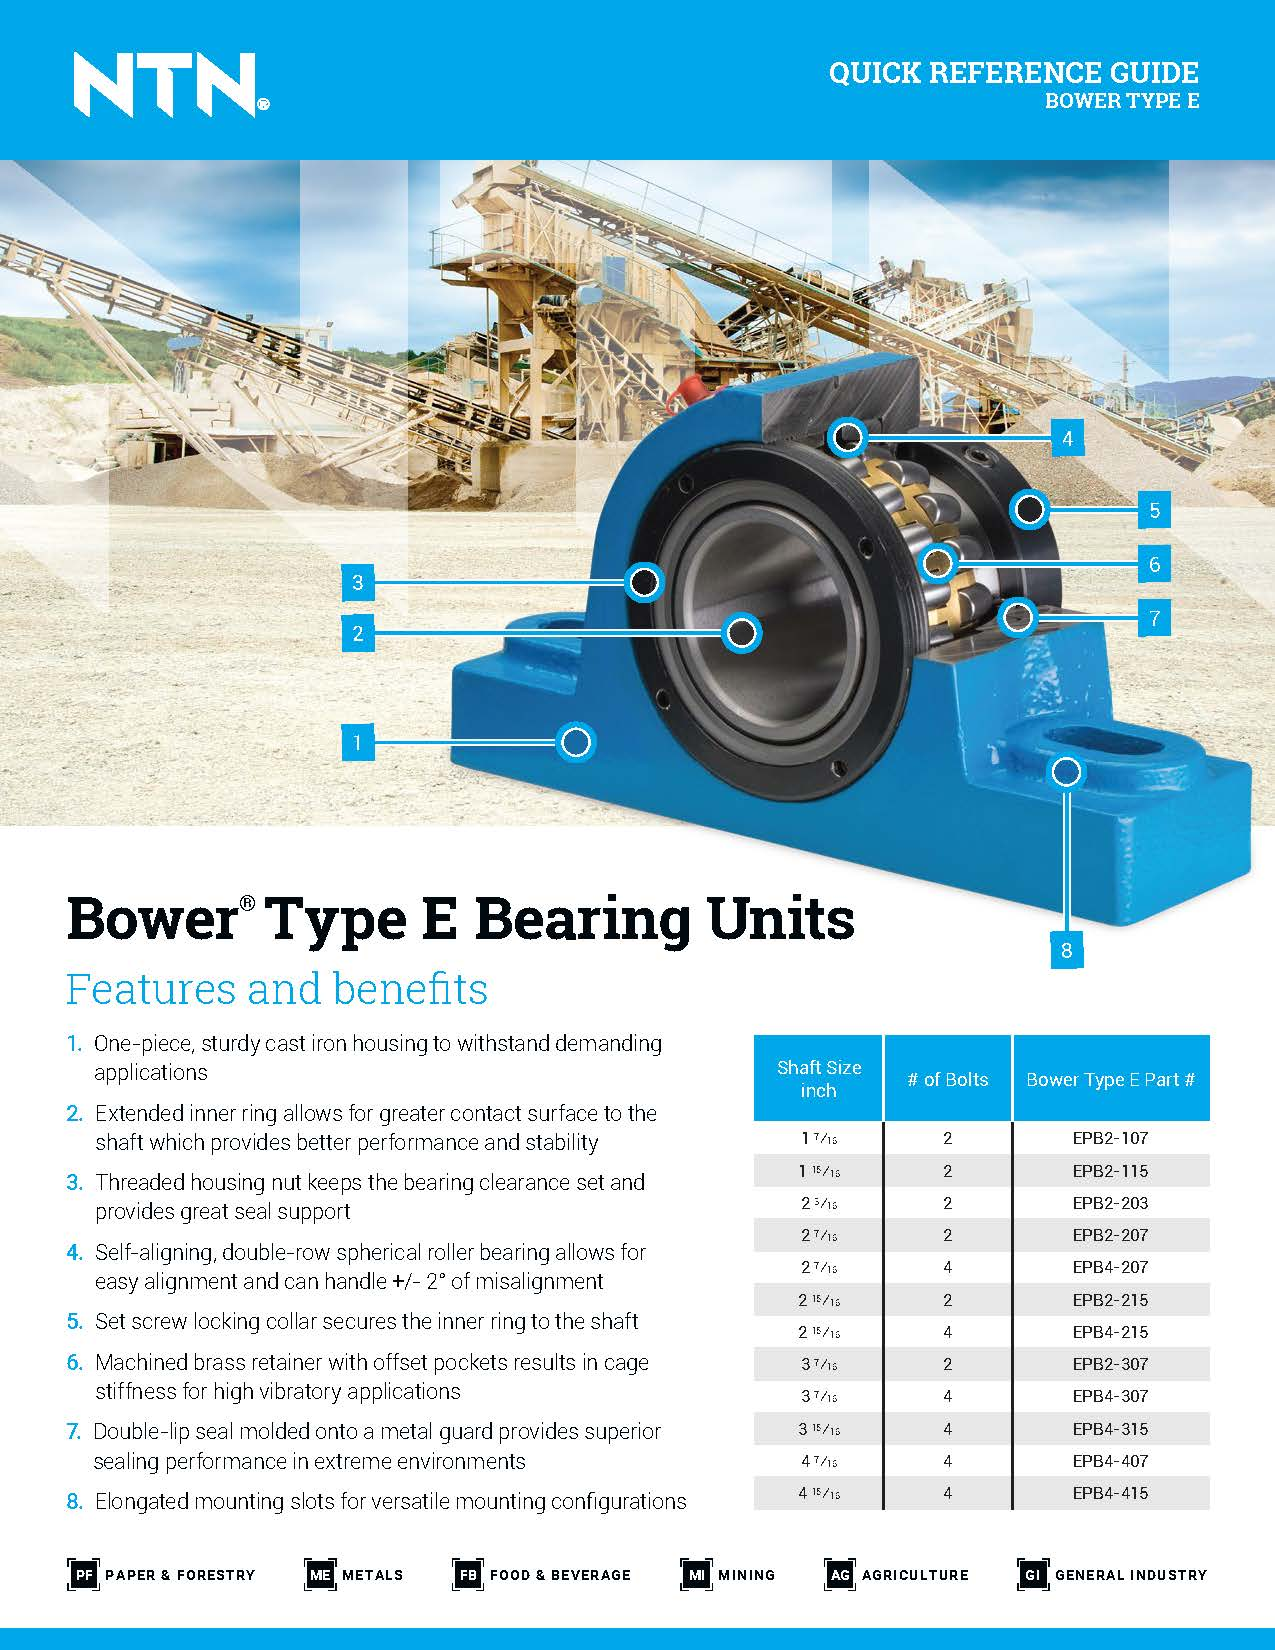 BowerTypeEQuickReferenceGuide https://ntn.ca/wp content/uploads///NTN Bower Type E Quick Ref Guide.pdf